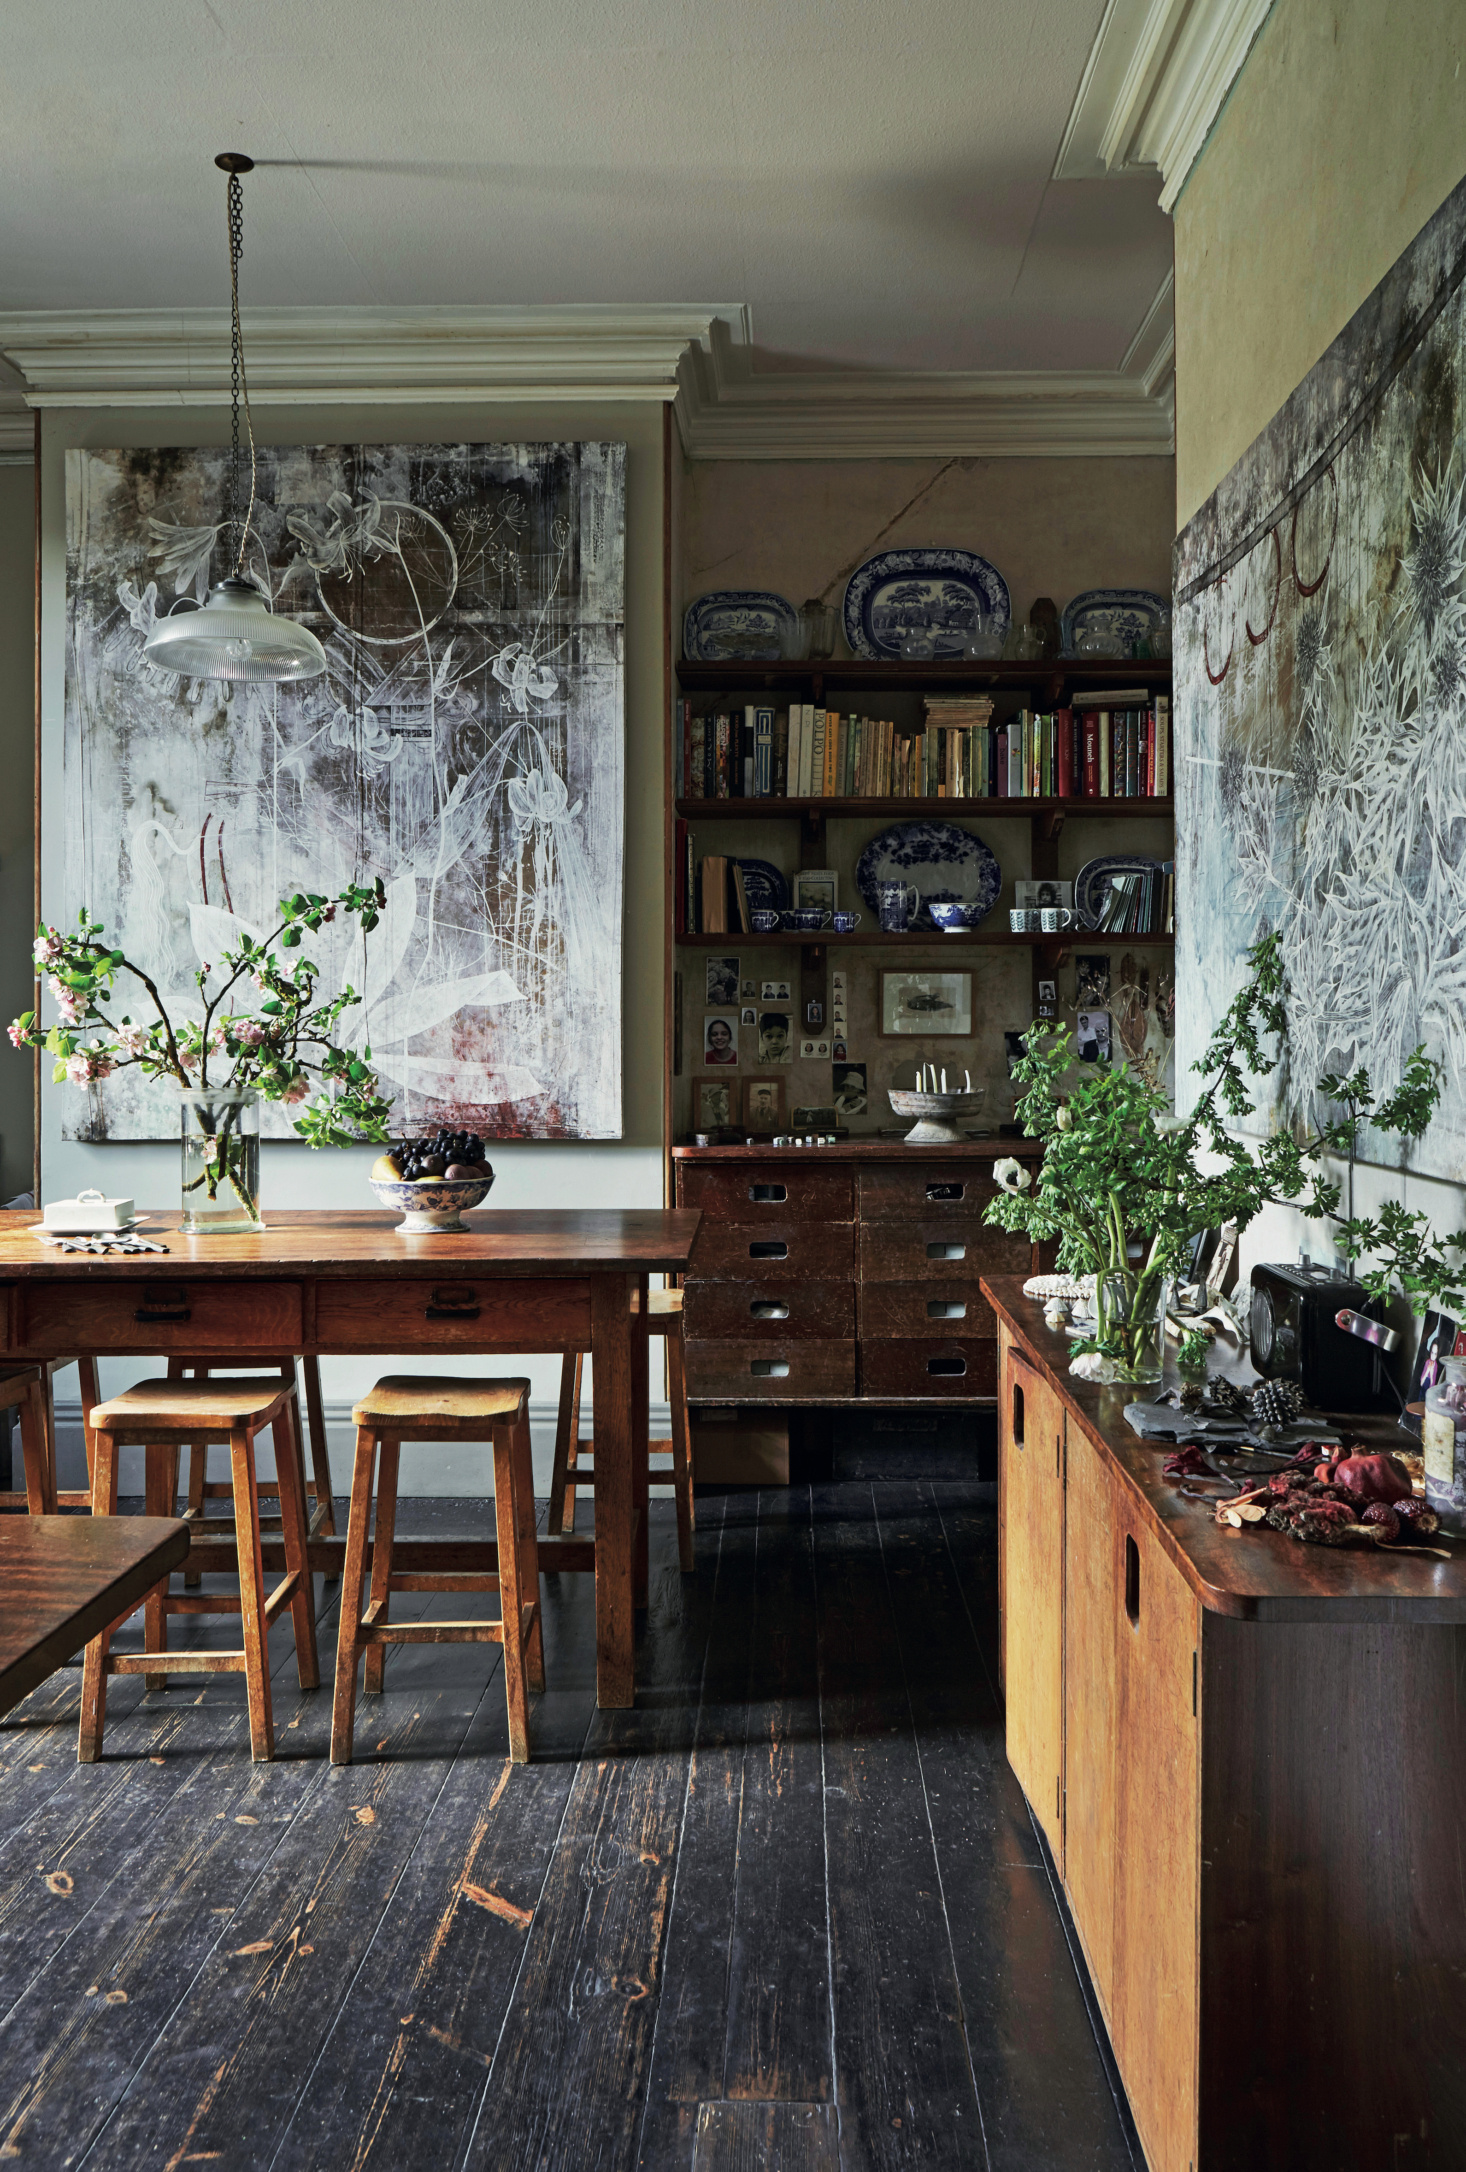 ROSE & IVY Journal An English Home Dripping with Botanical Charm